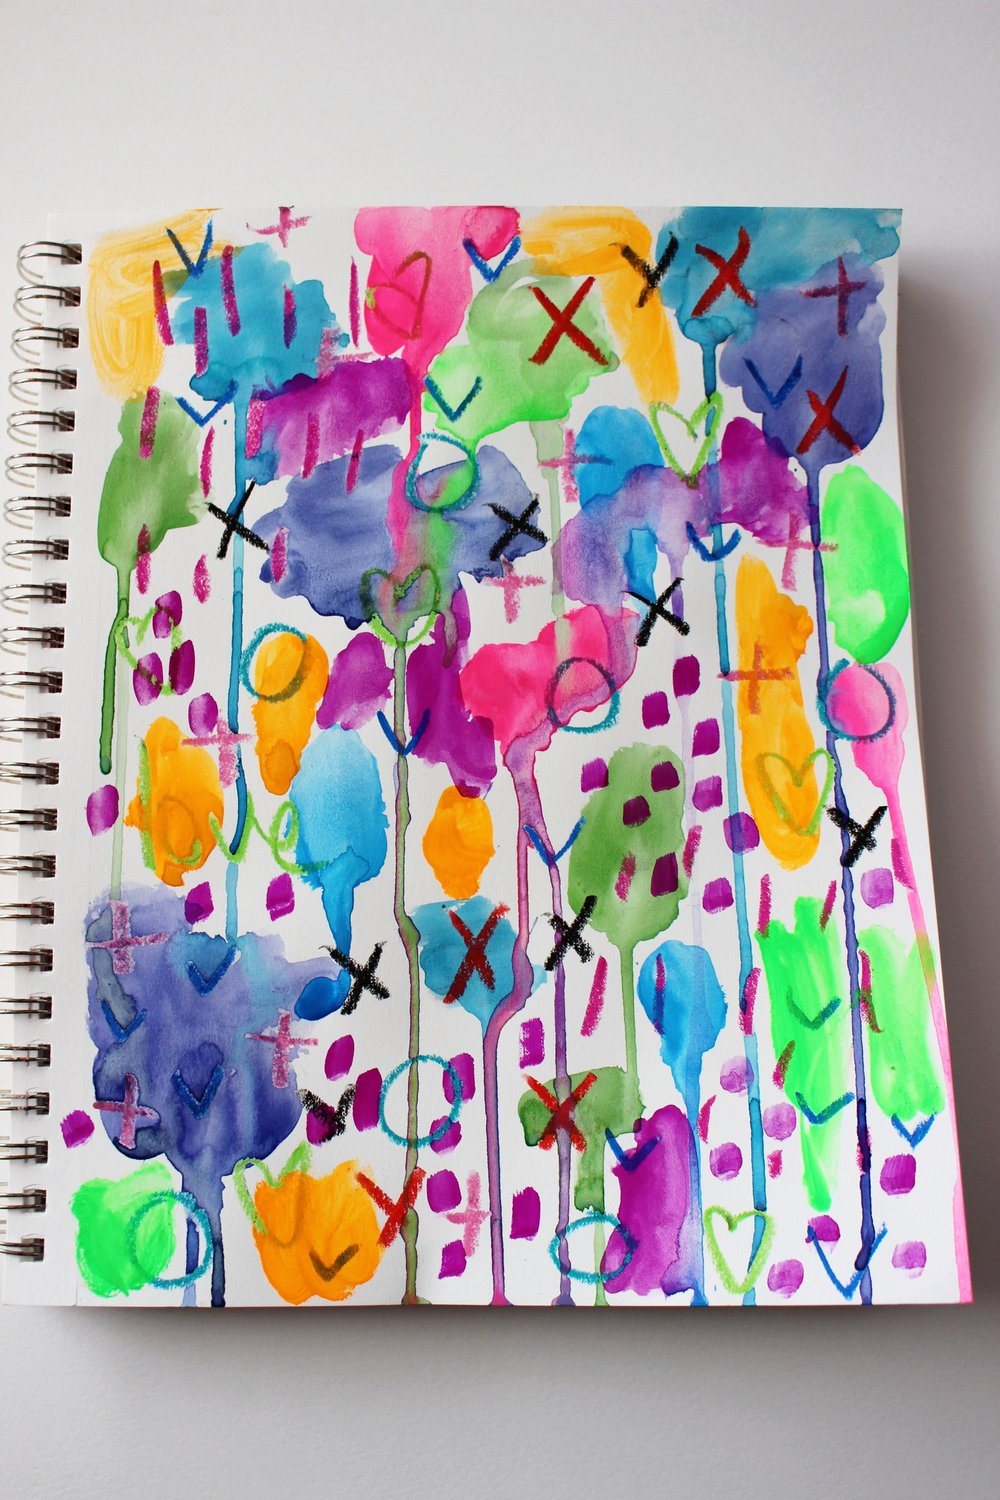 tip: lift up the surface while watercolors are still wet to create drips